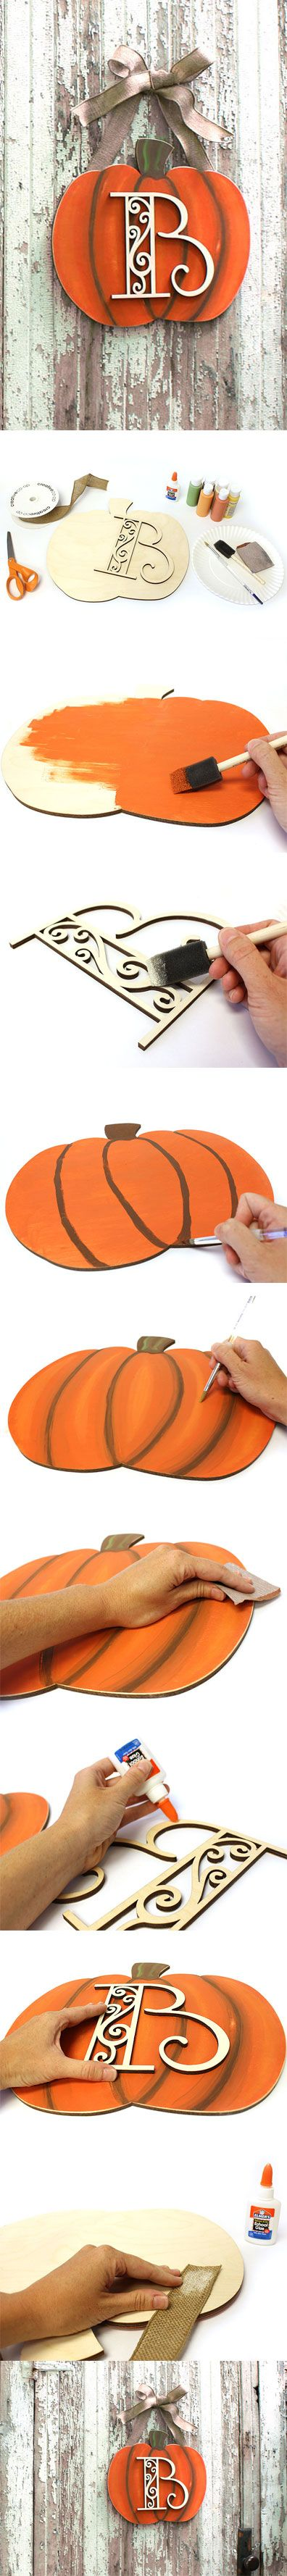 Pumpkin Monogram Wreath | Fall Pumpkin Wreath | CraftCuts.com